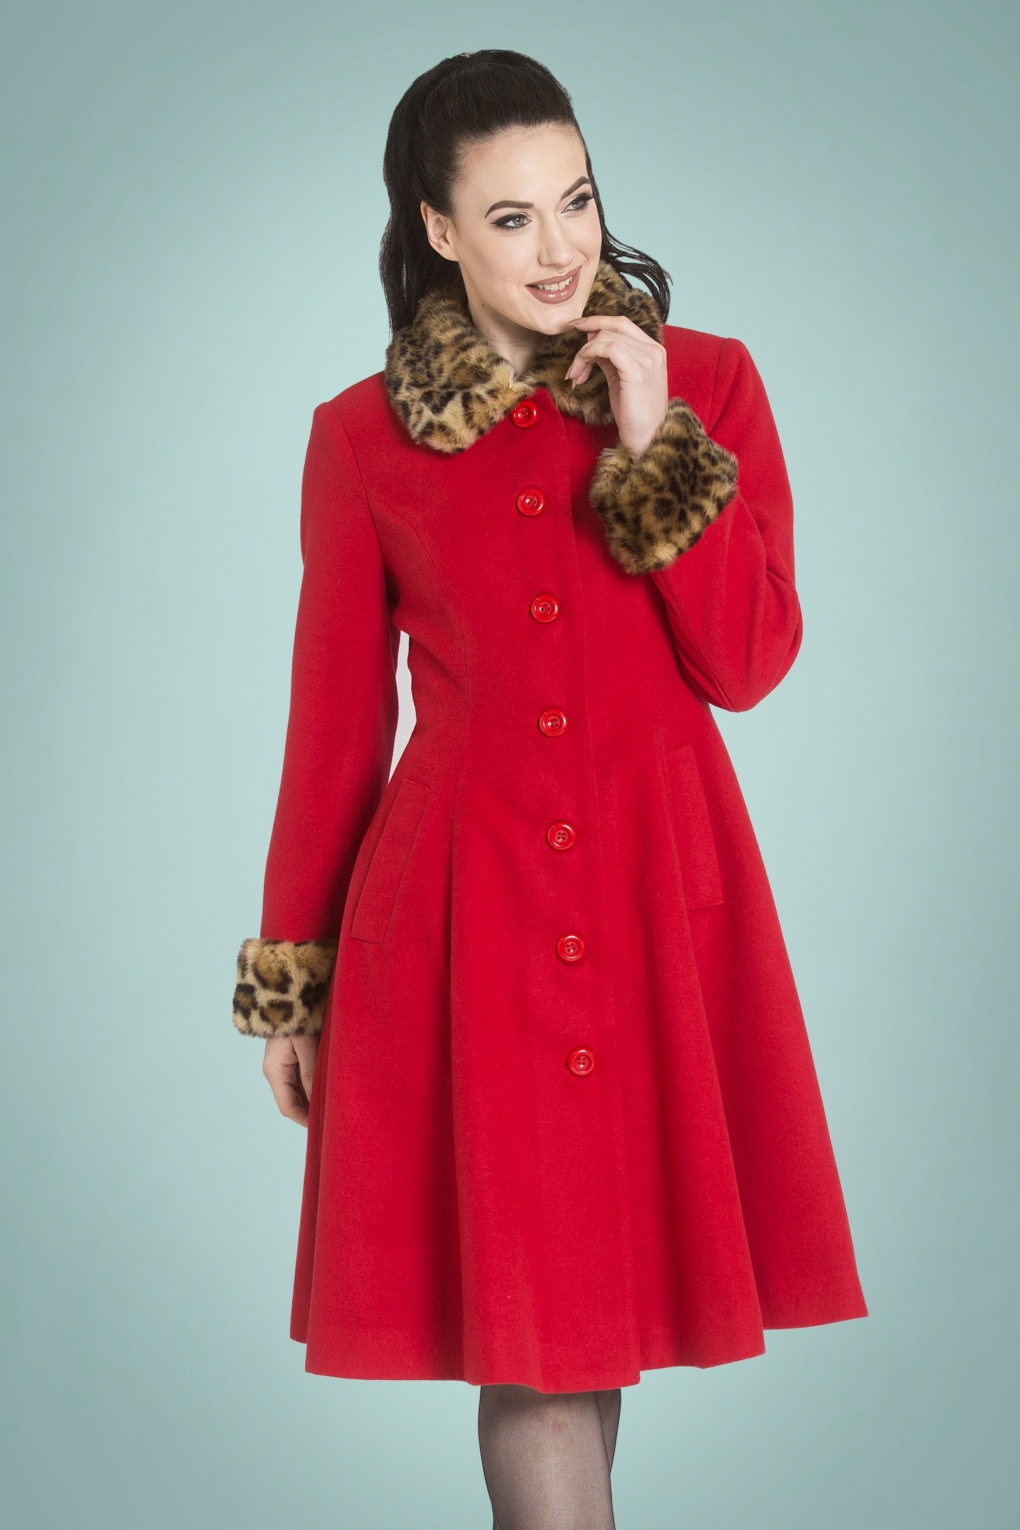 Vintage Coats & Jackets | Retro Coats and Jackets 50s Robinson Coat in Red £129.26 AT vintagedancer.com